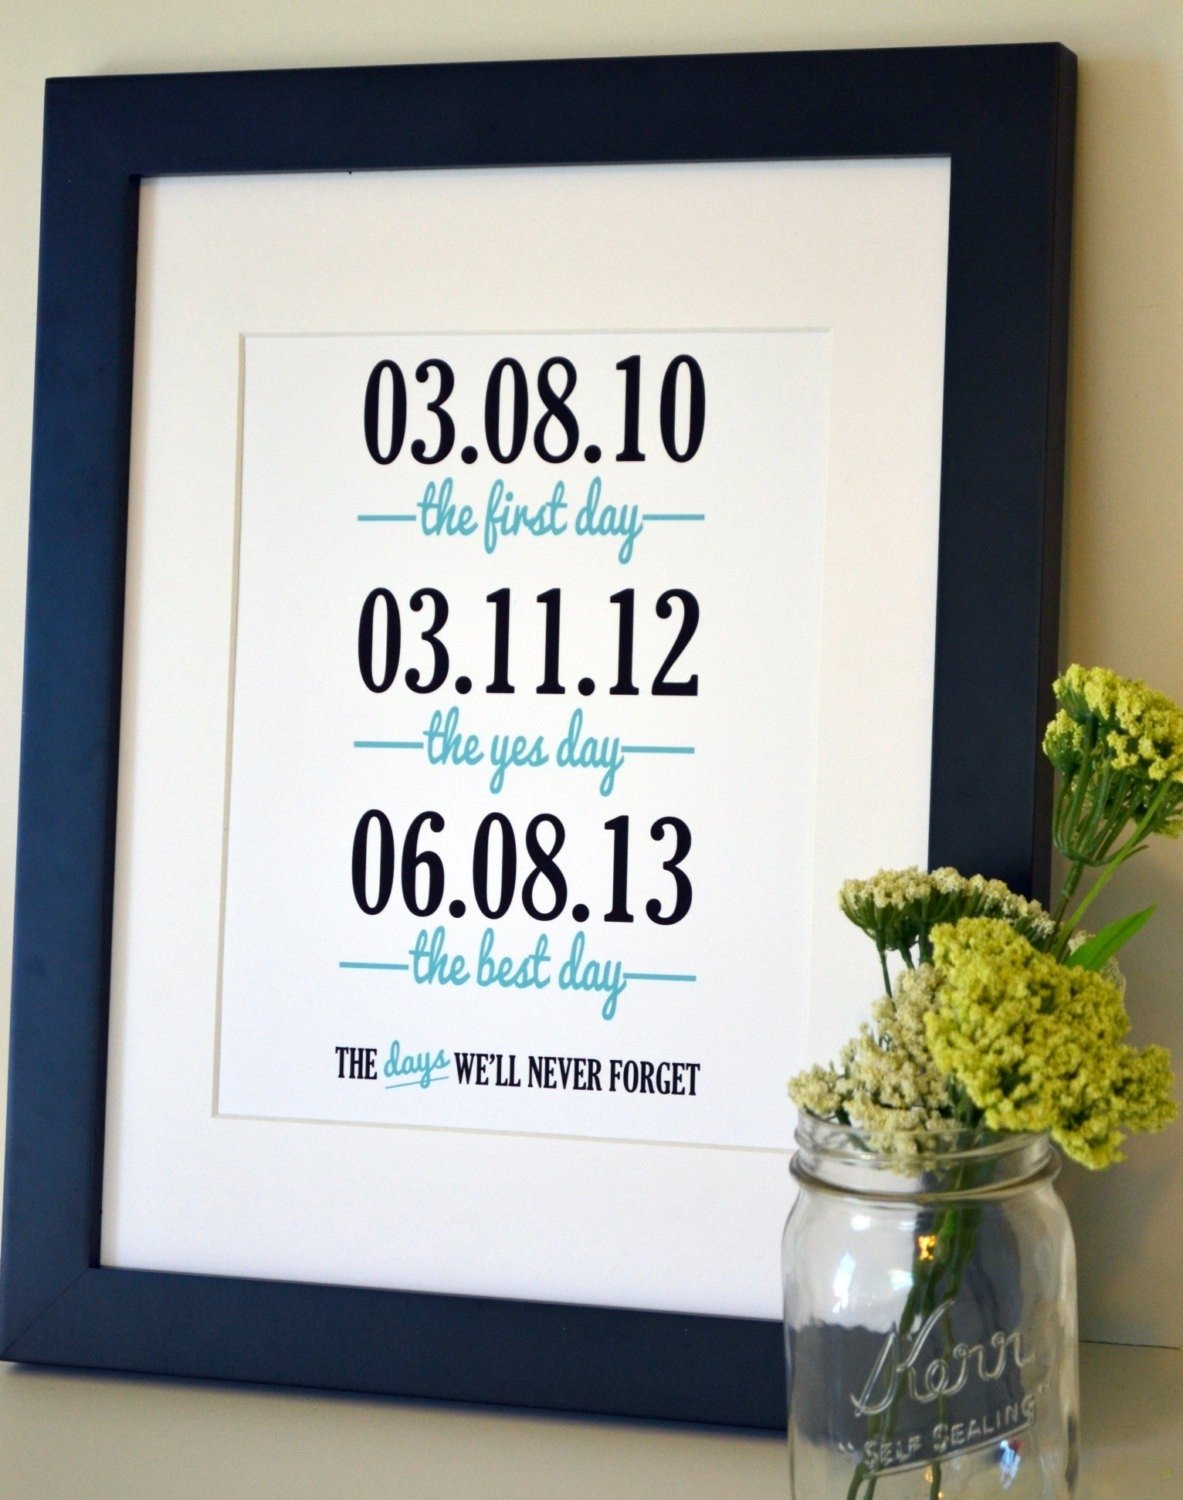 10 Fabulous Second Anniversary Gift Ideas For Husband second wedding anniversary gift ideas for husband fresh stunning 2020